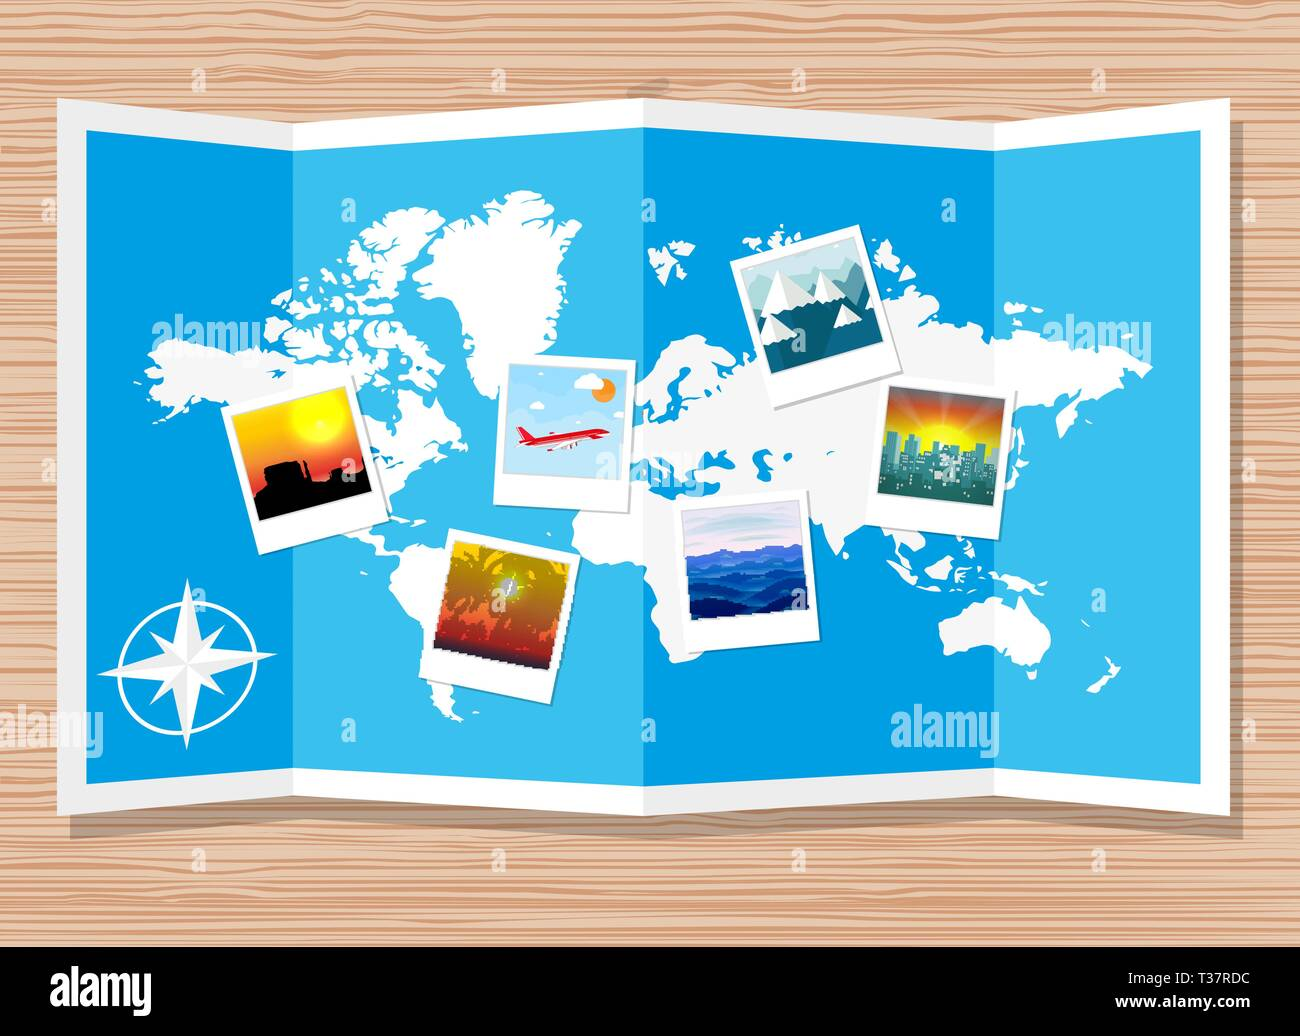 Wooden travellers desk with folded paper map of world and photos. travel and vacation concept. vector illustration in flat design - Stock Vector